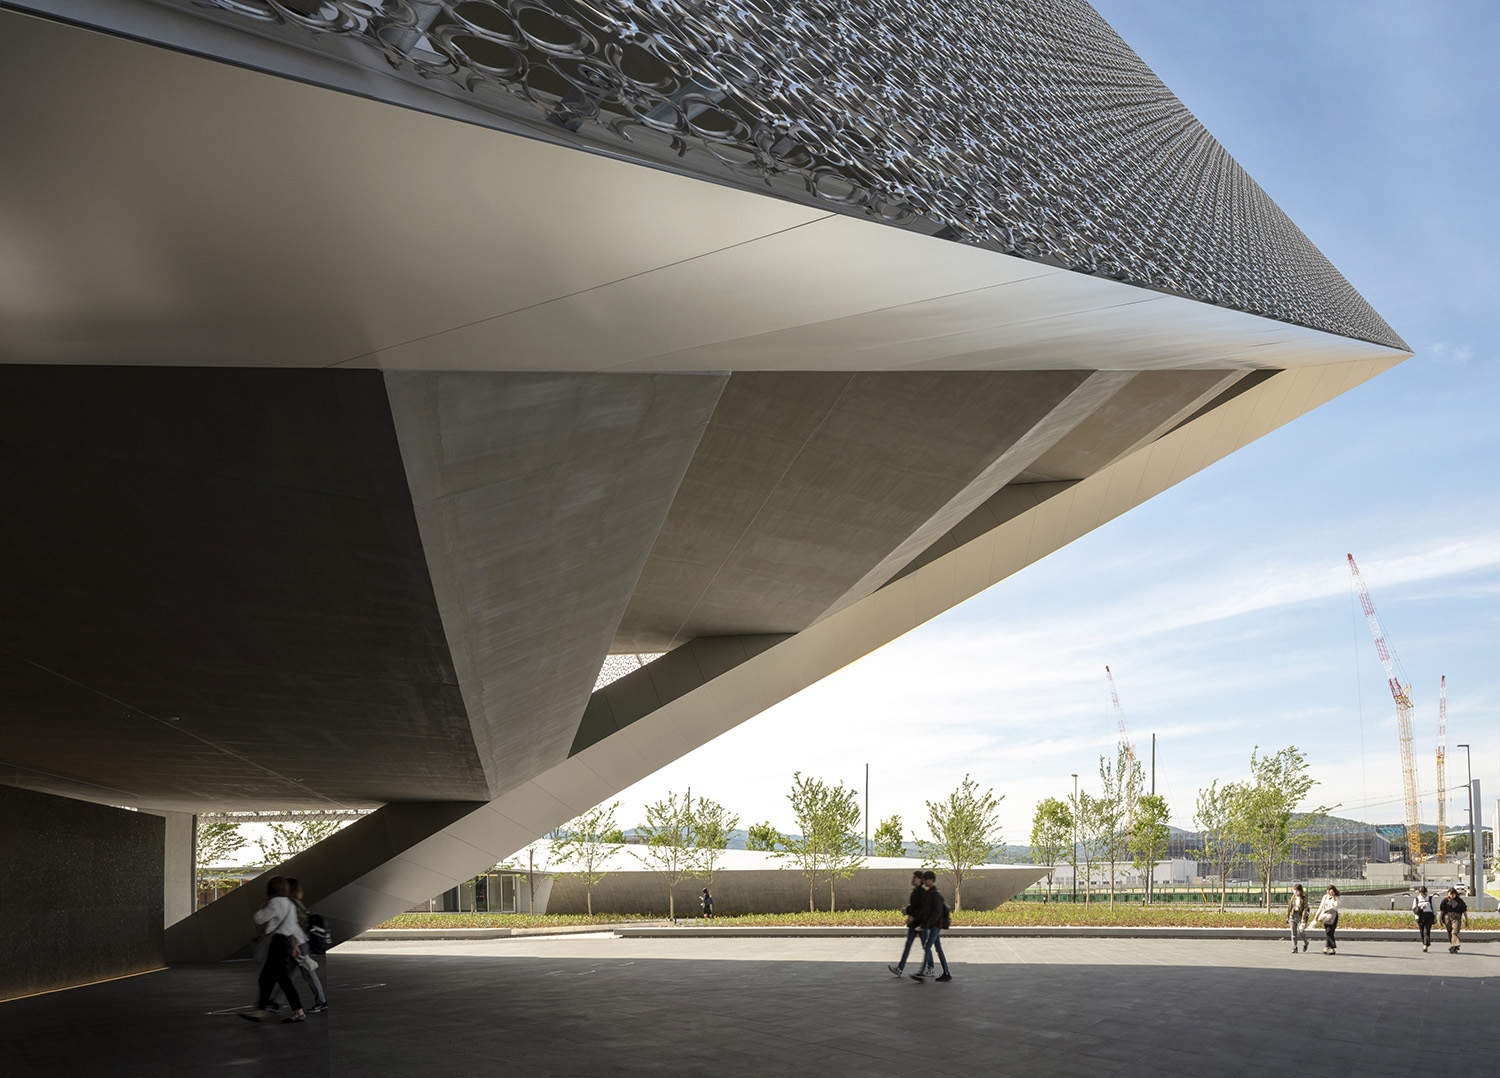 he corner of triangular plane overhanging approximately 40m to create the symbolic entrance. Hisao Suzuki